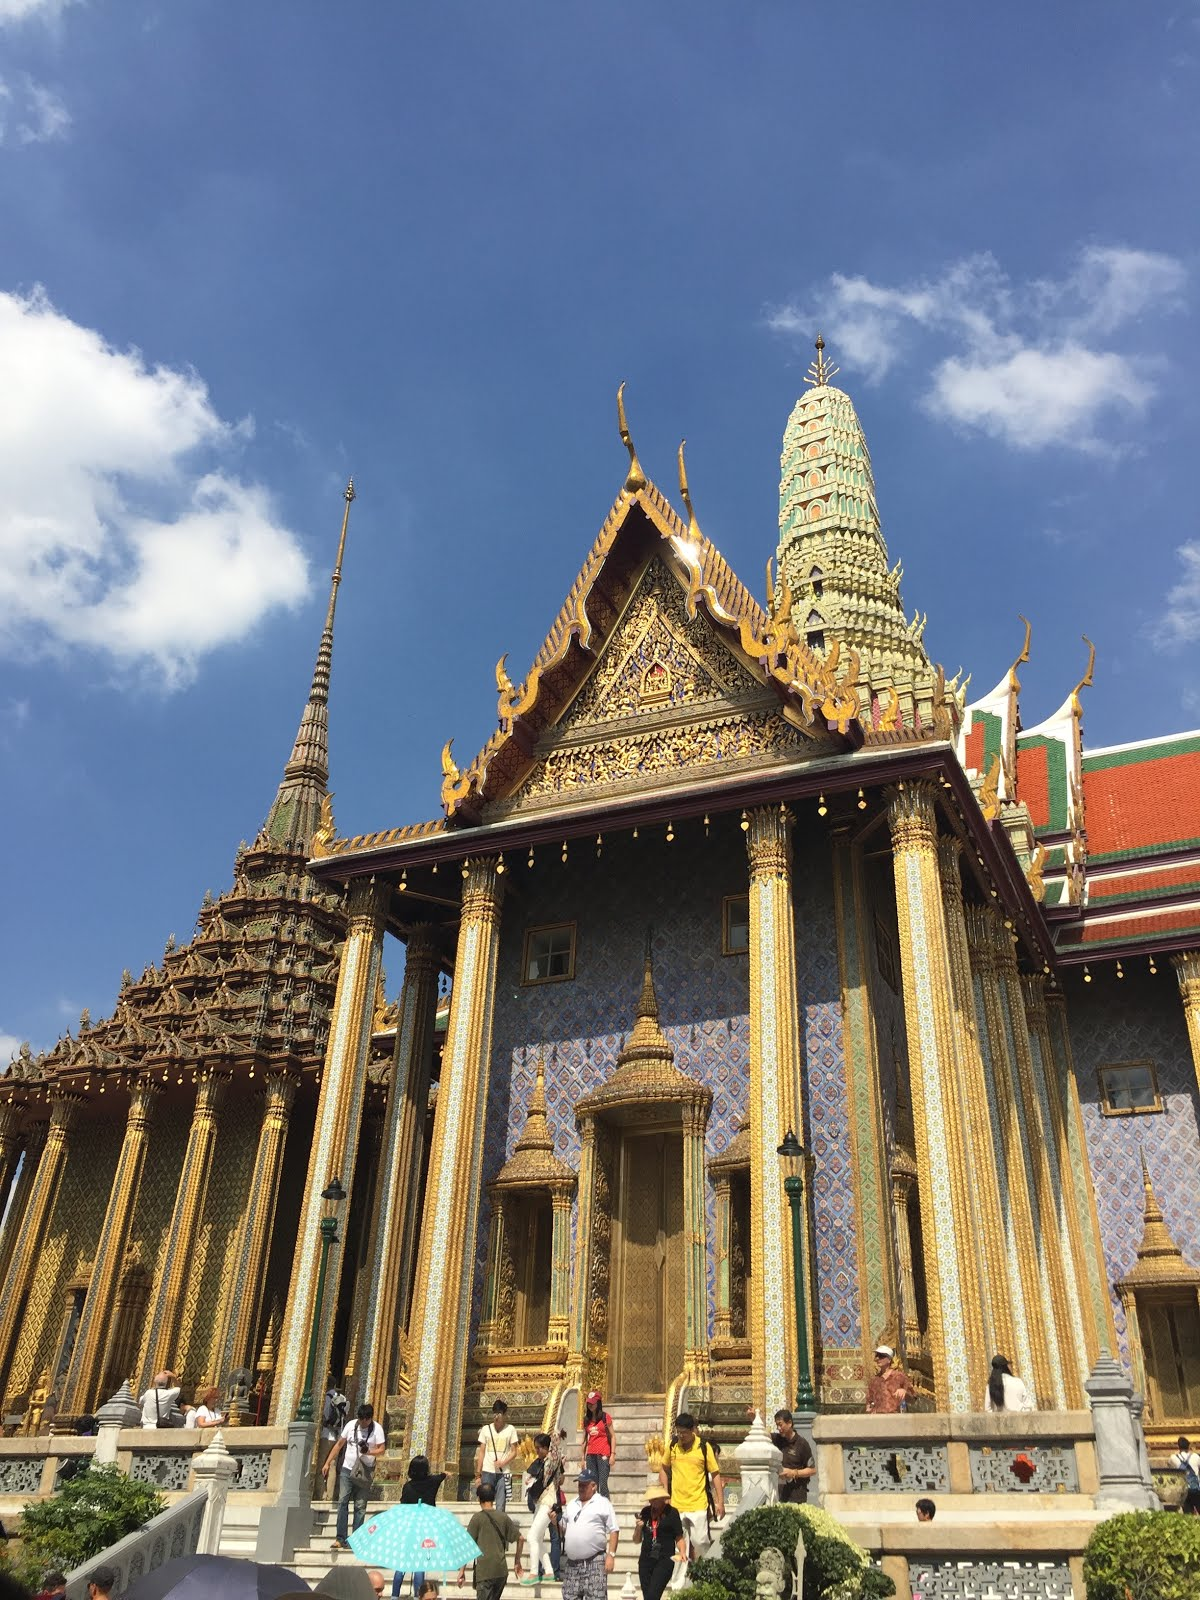 The intricate Grand Palace in Bangkok, Thailand